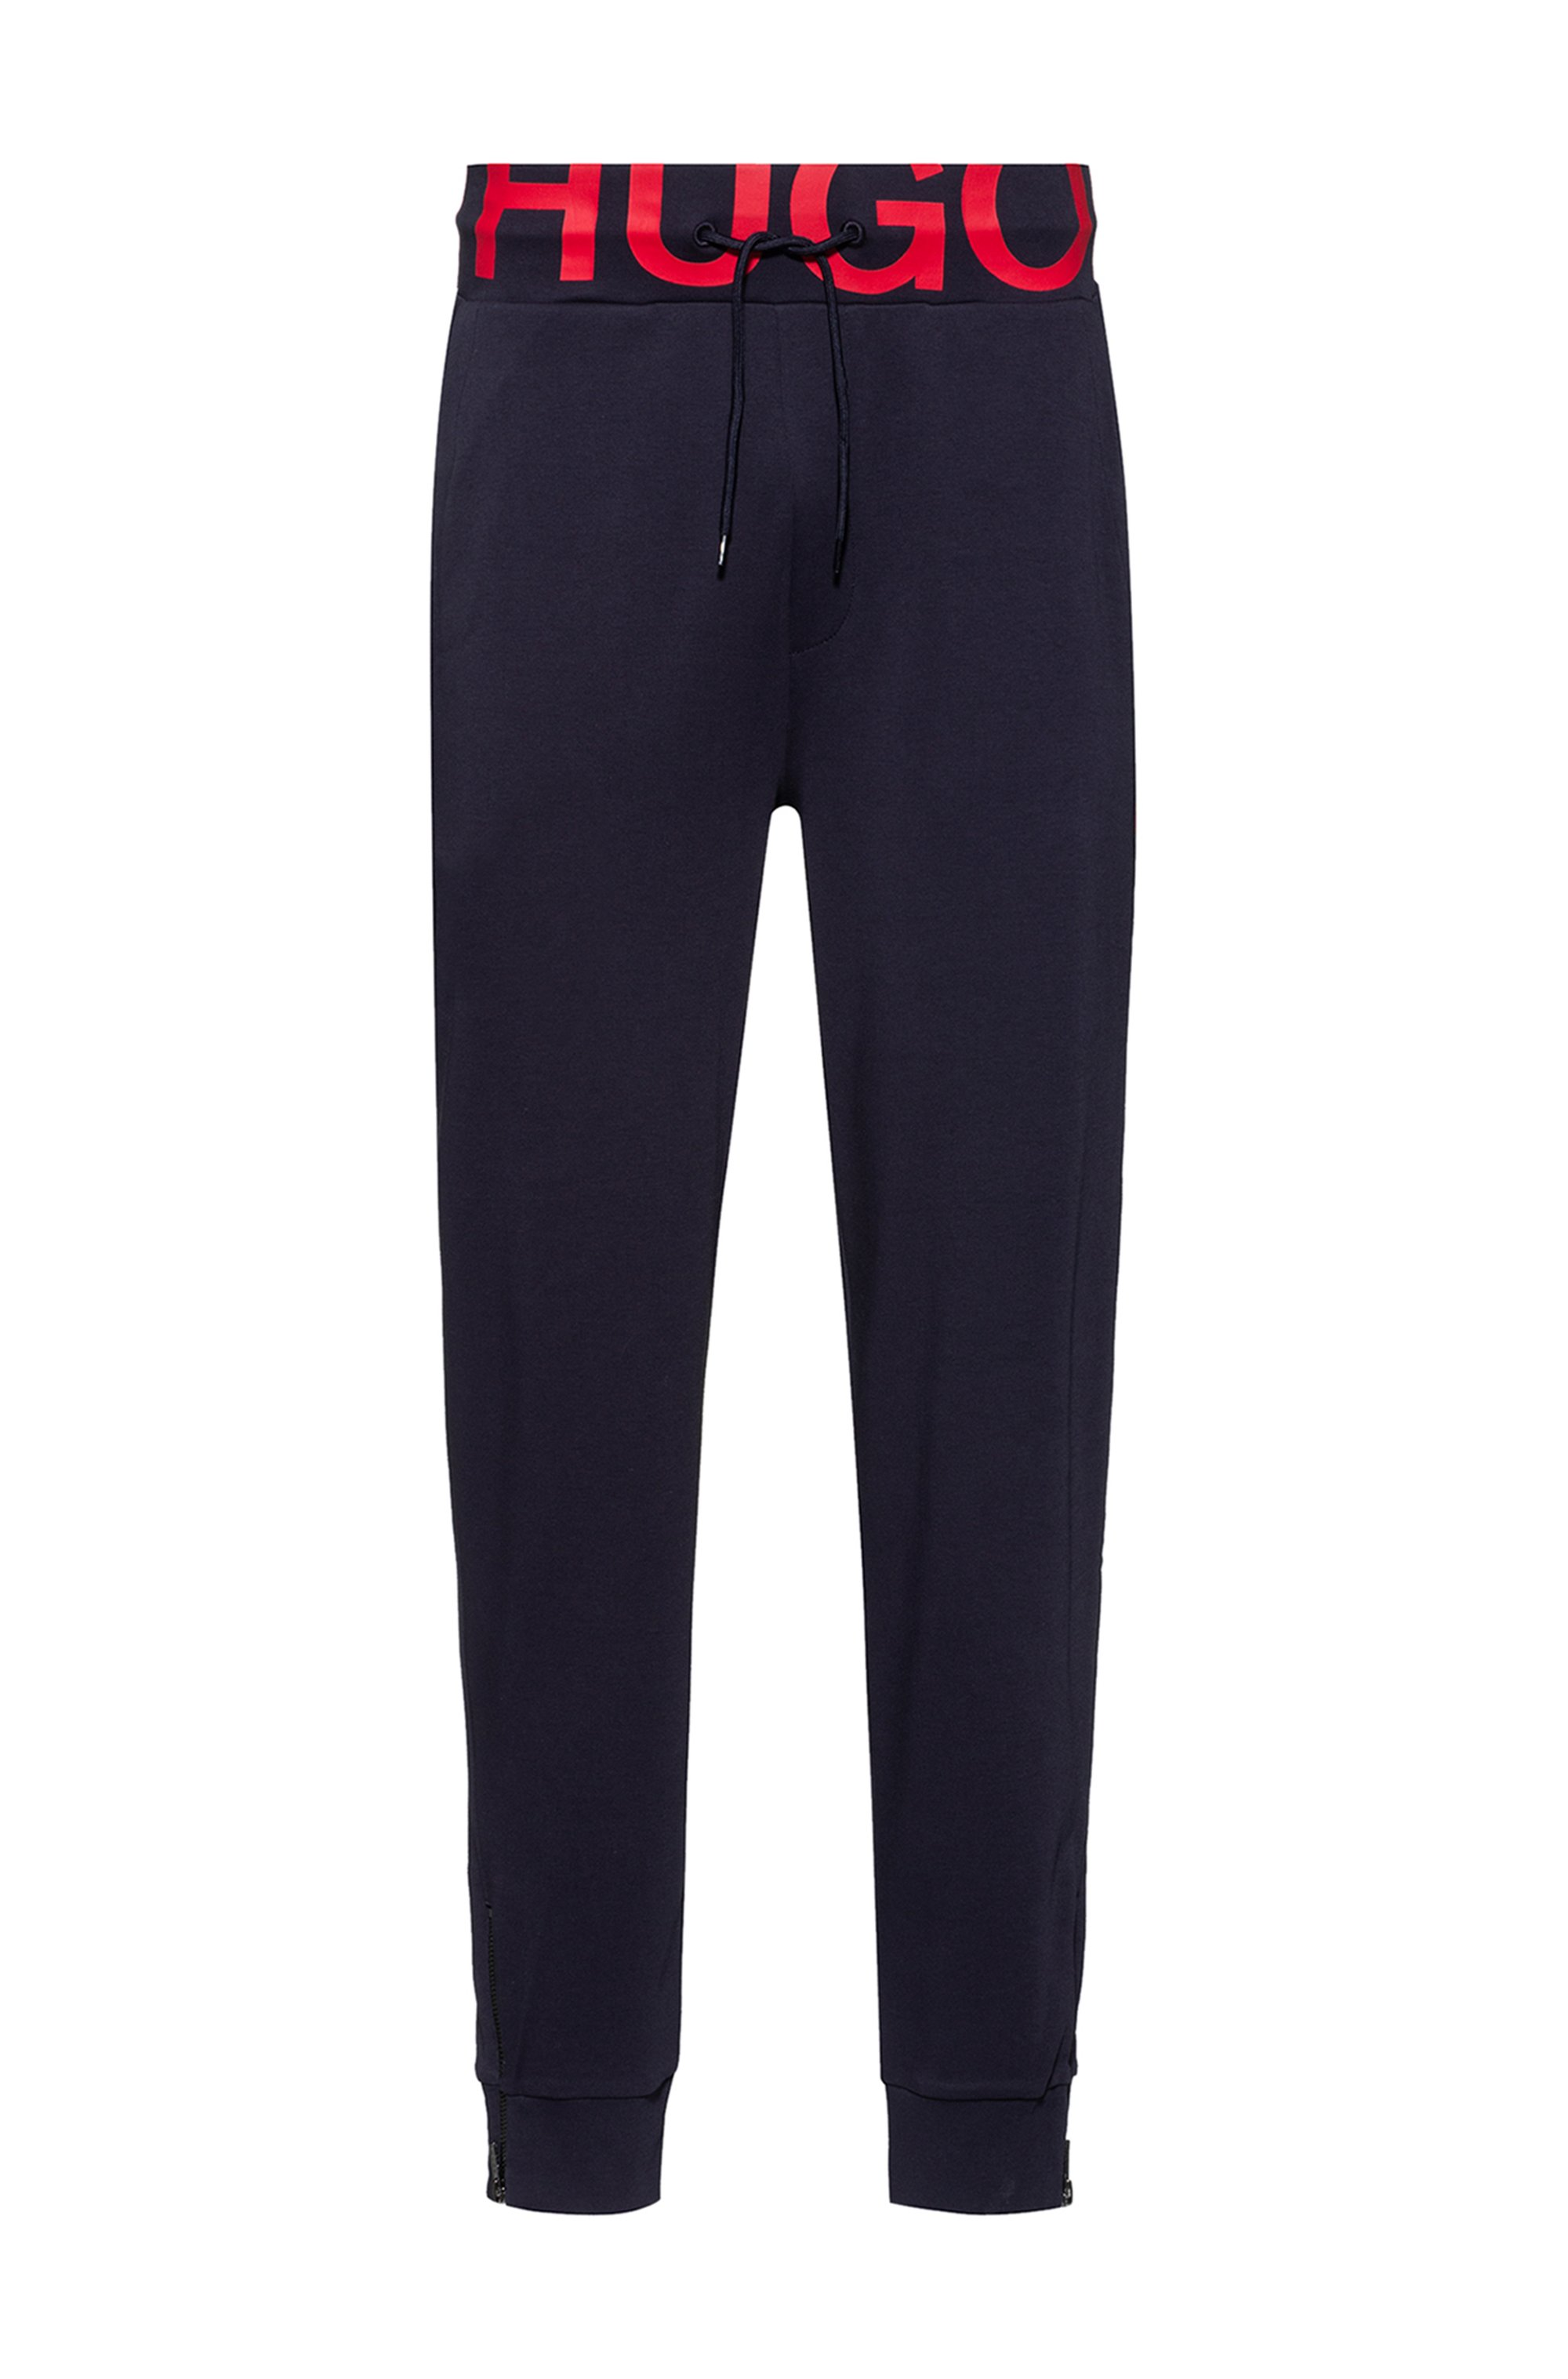 Interlock-cotton tracksuit bottoms with waistband logo, Dark Blue